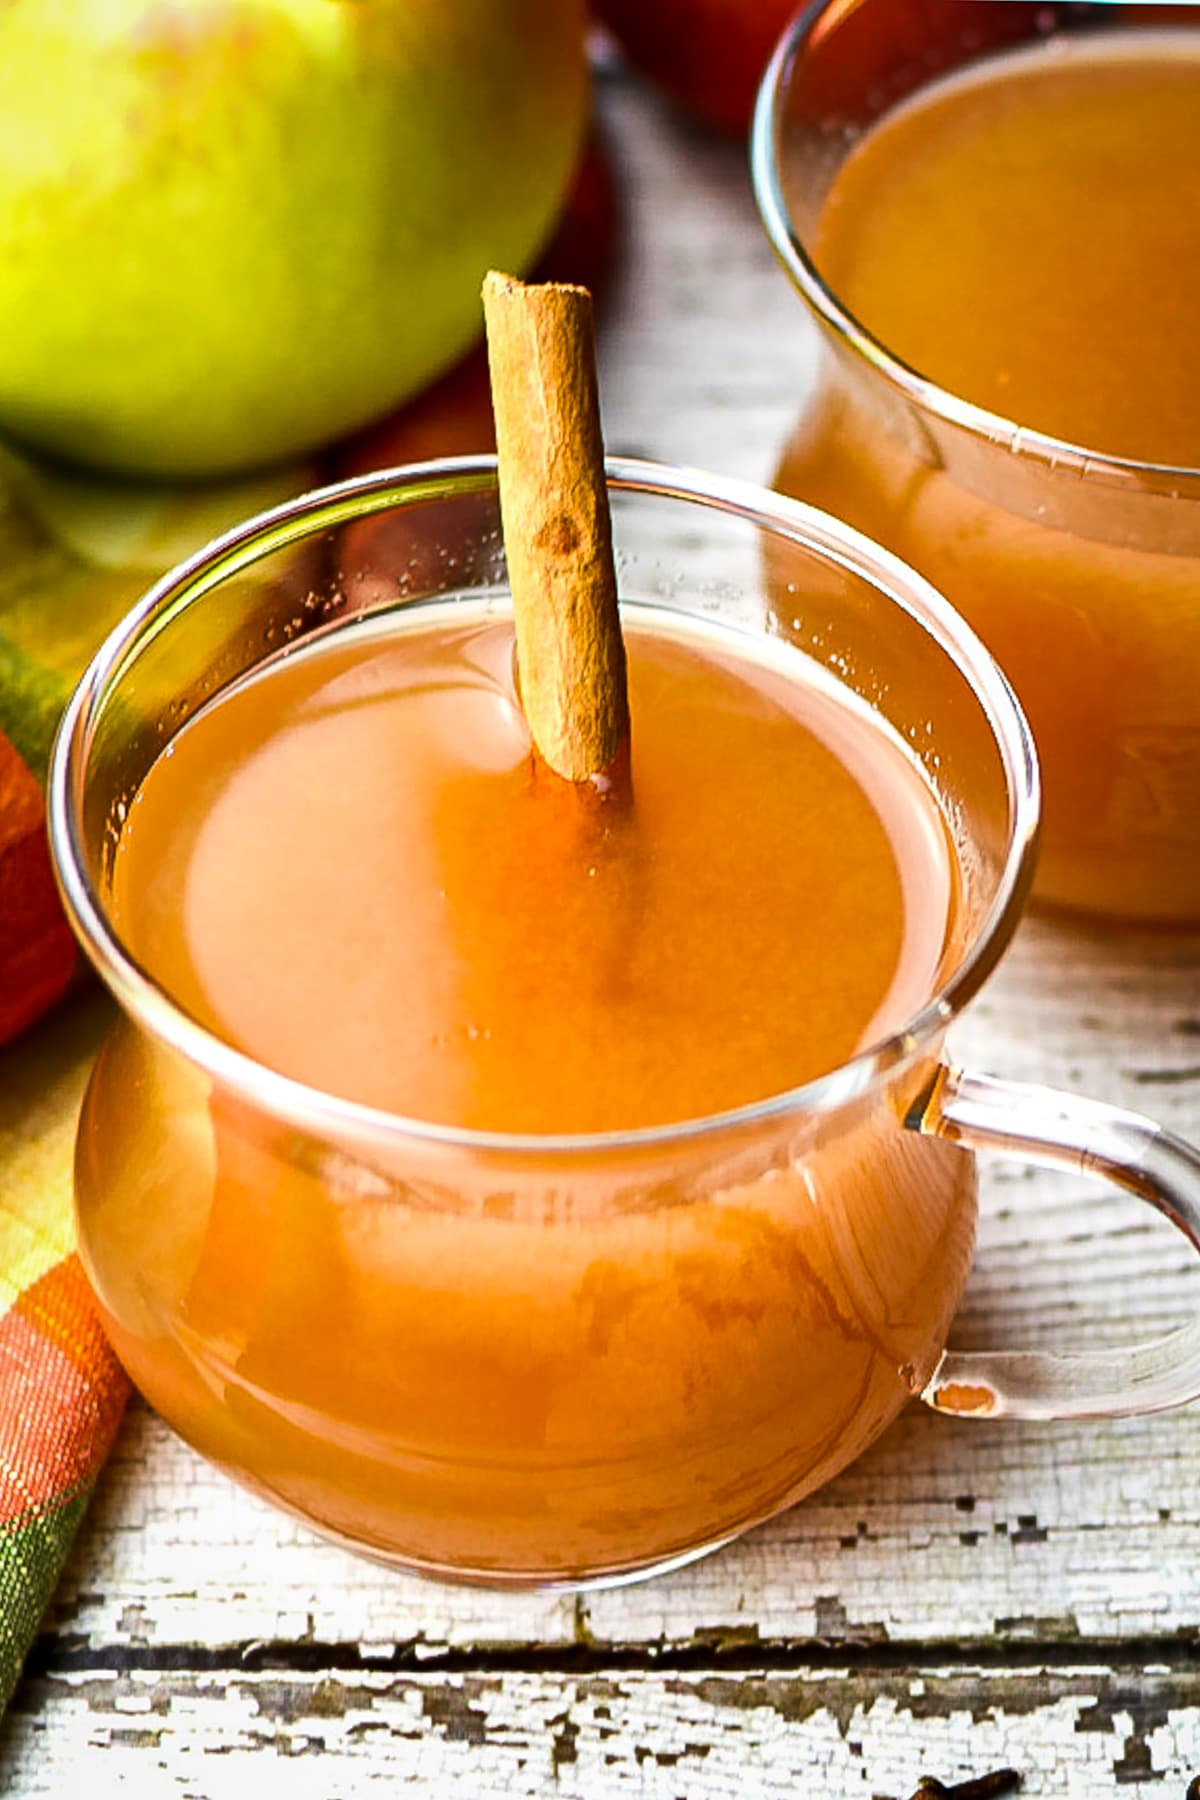 Spiced apple cider served in cups with cinnamon stick